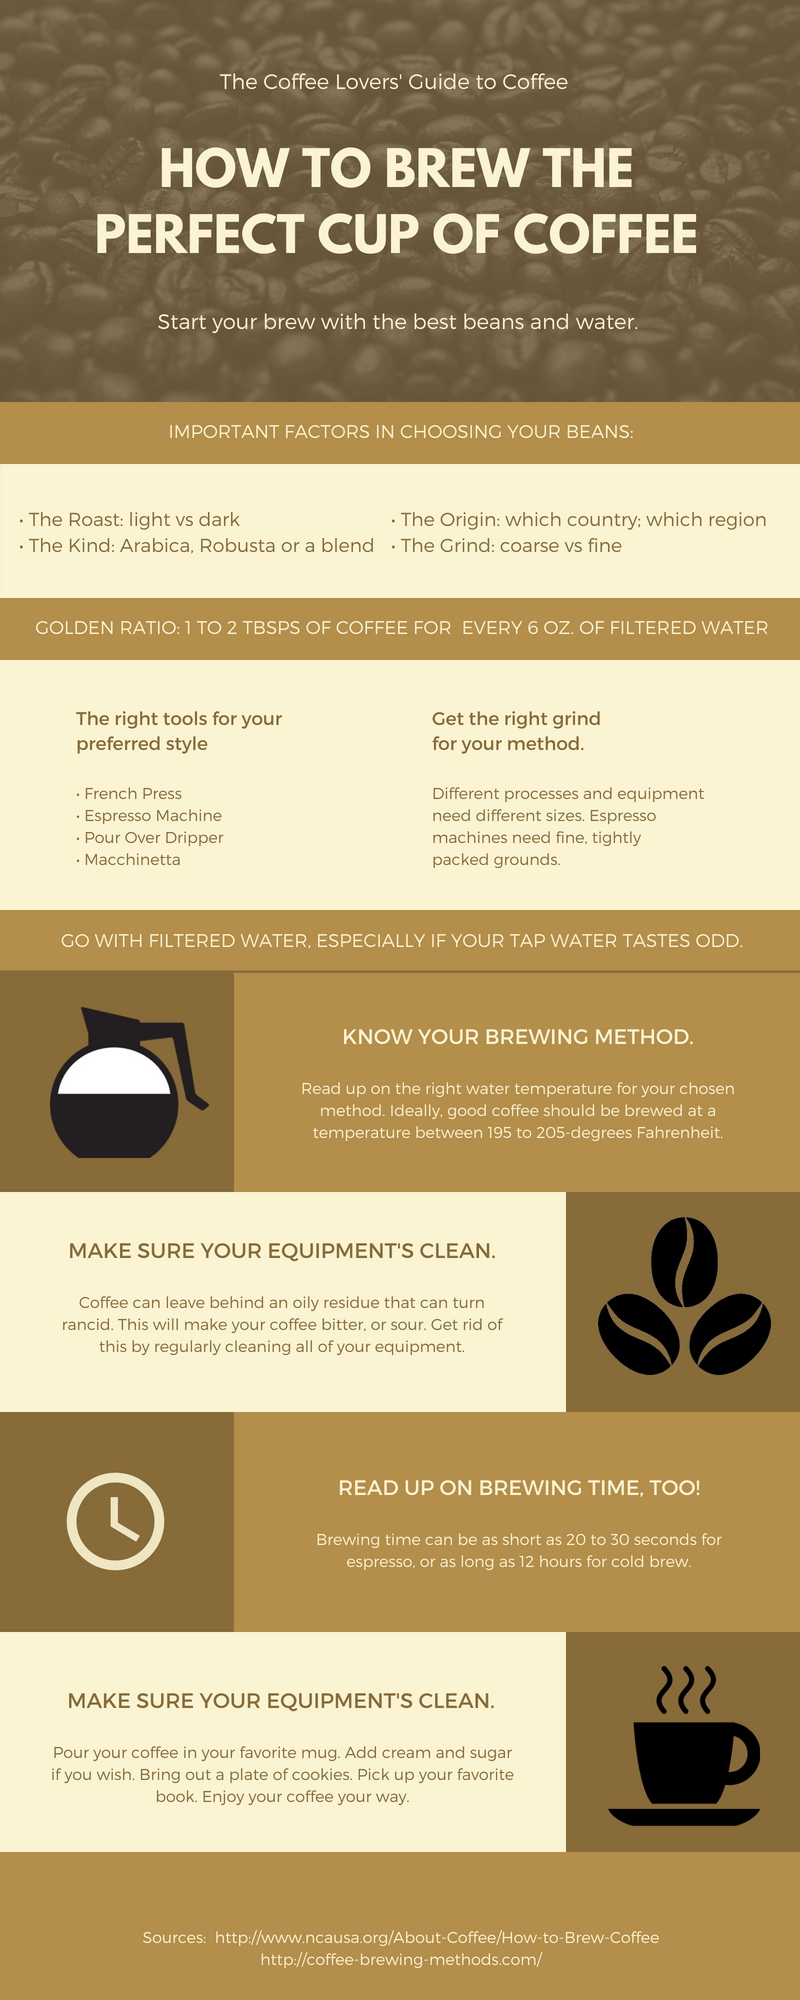 How to Brew the Perfect Cup of Coffee - An Infographic